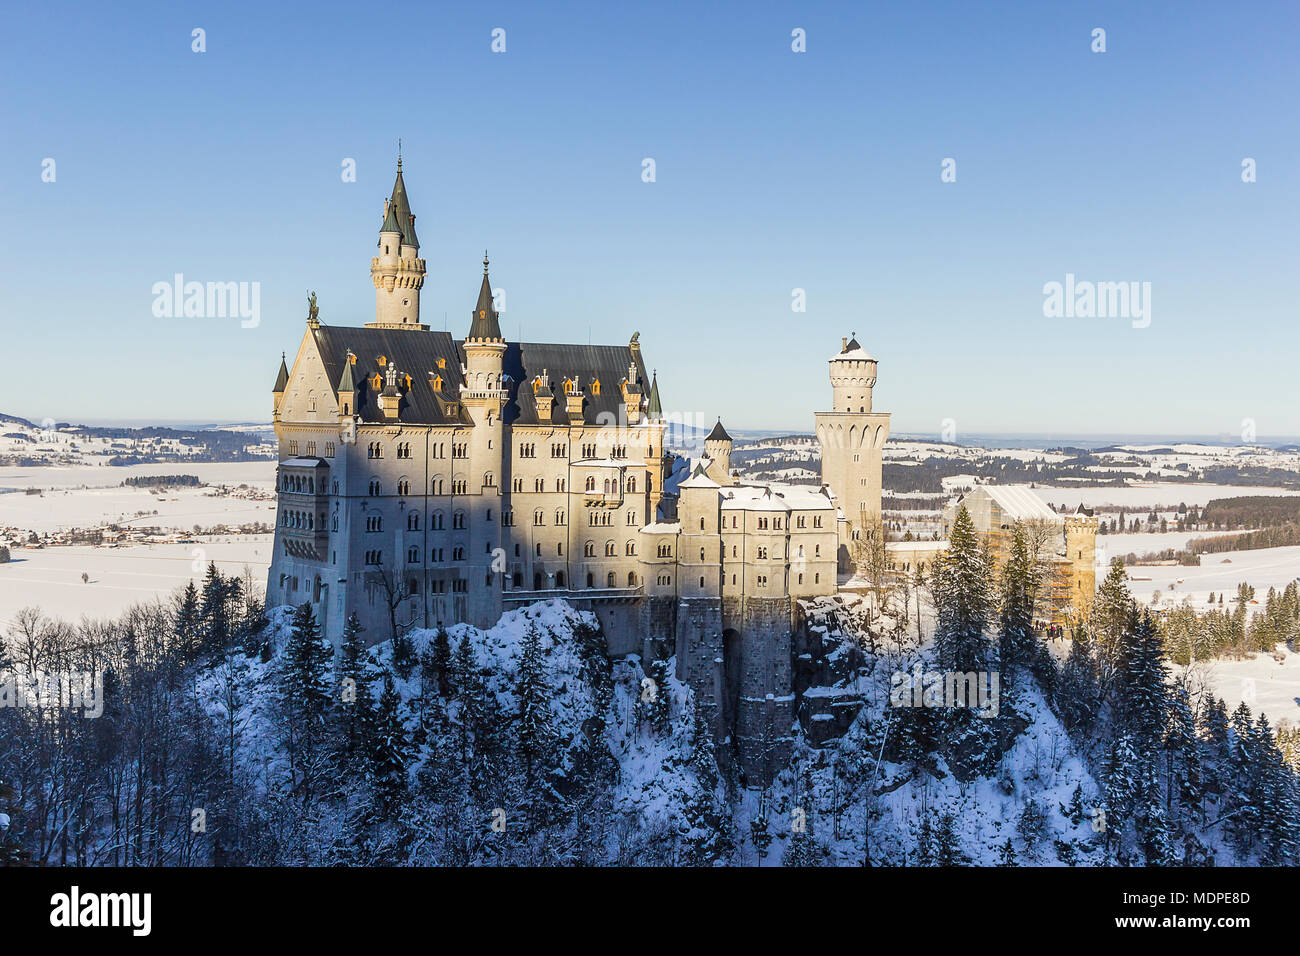 View of Neuschwanstein Castle from  Queen Mary's Bridge surrounded by trees and snow - Stock Image